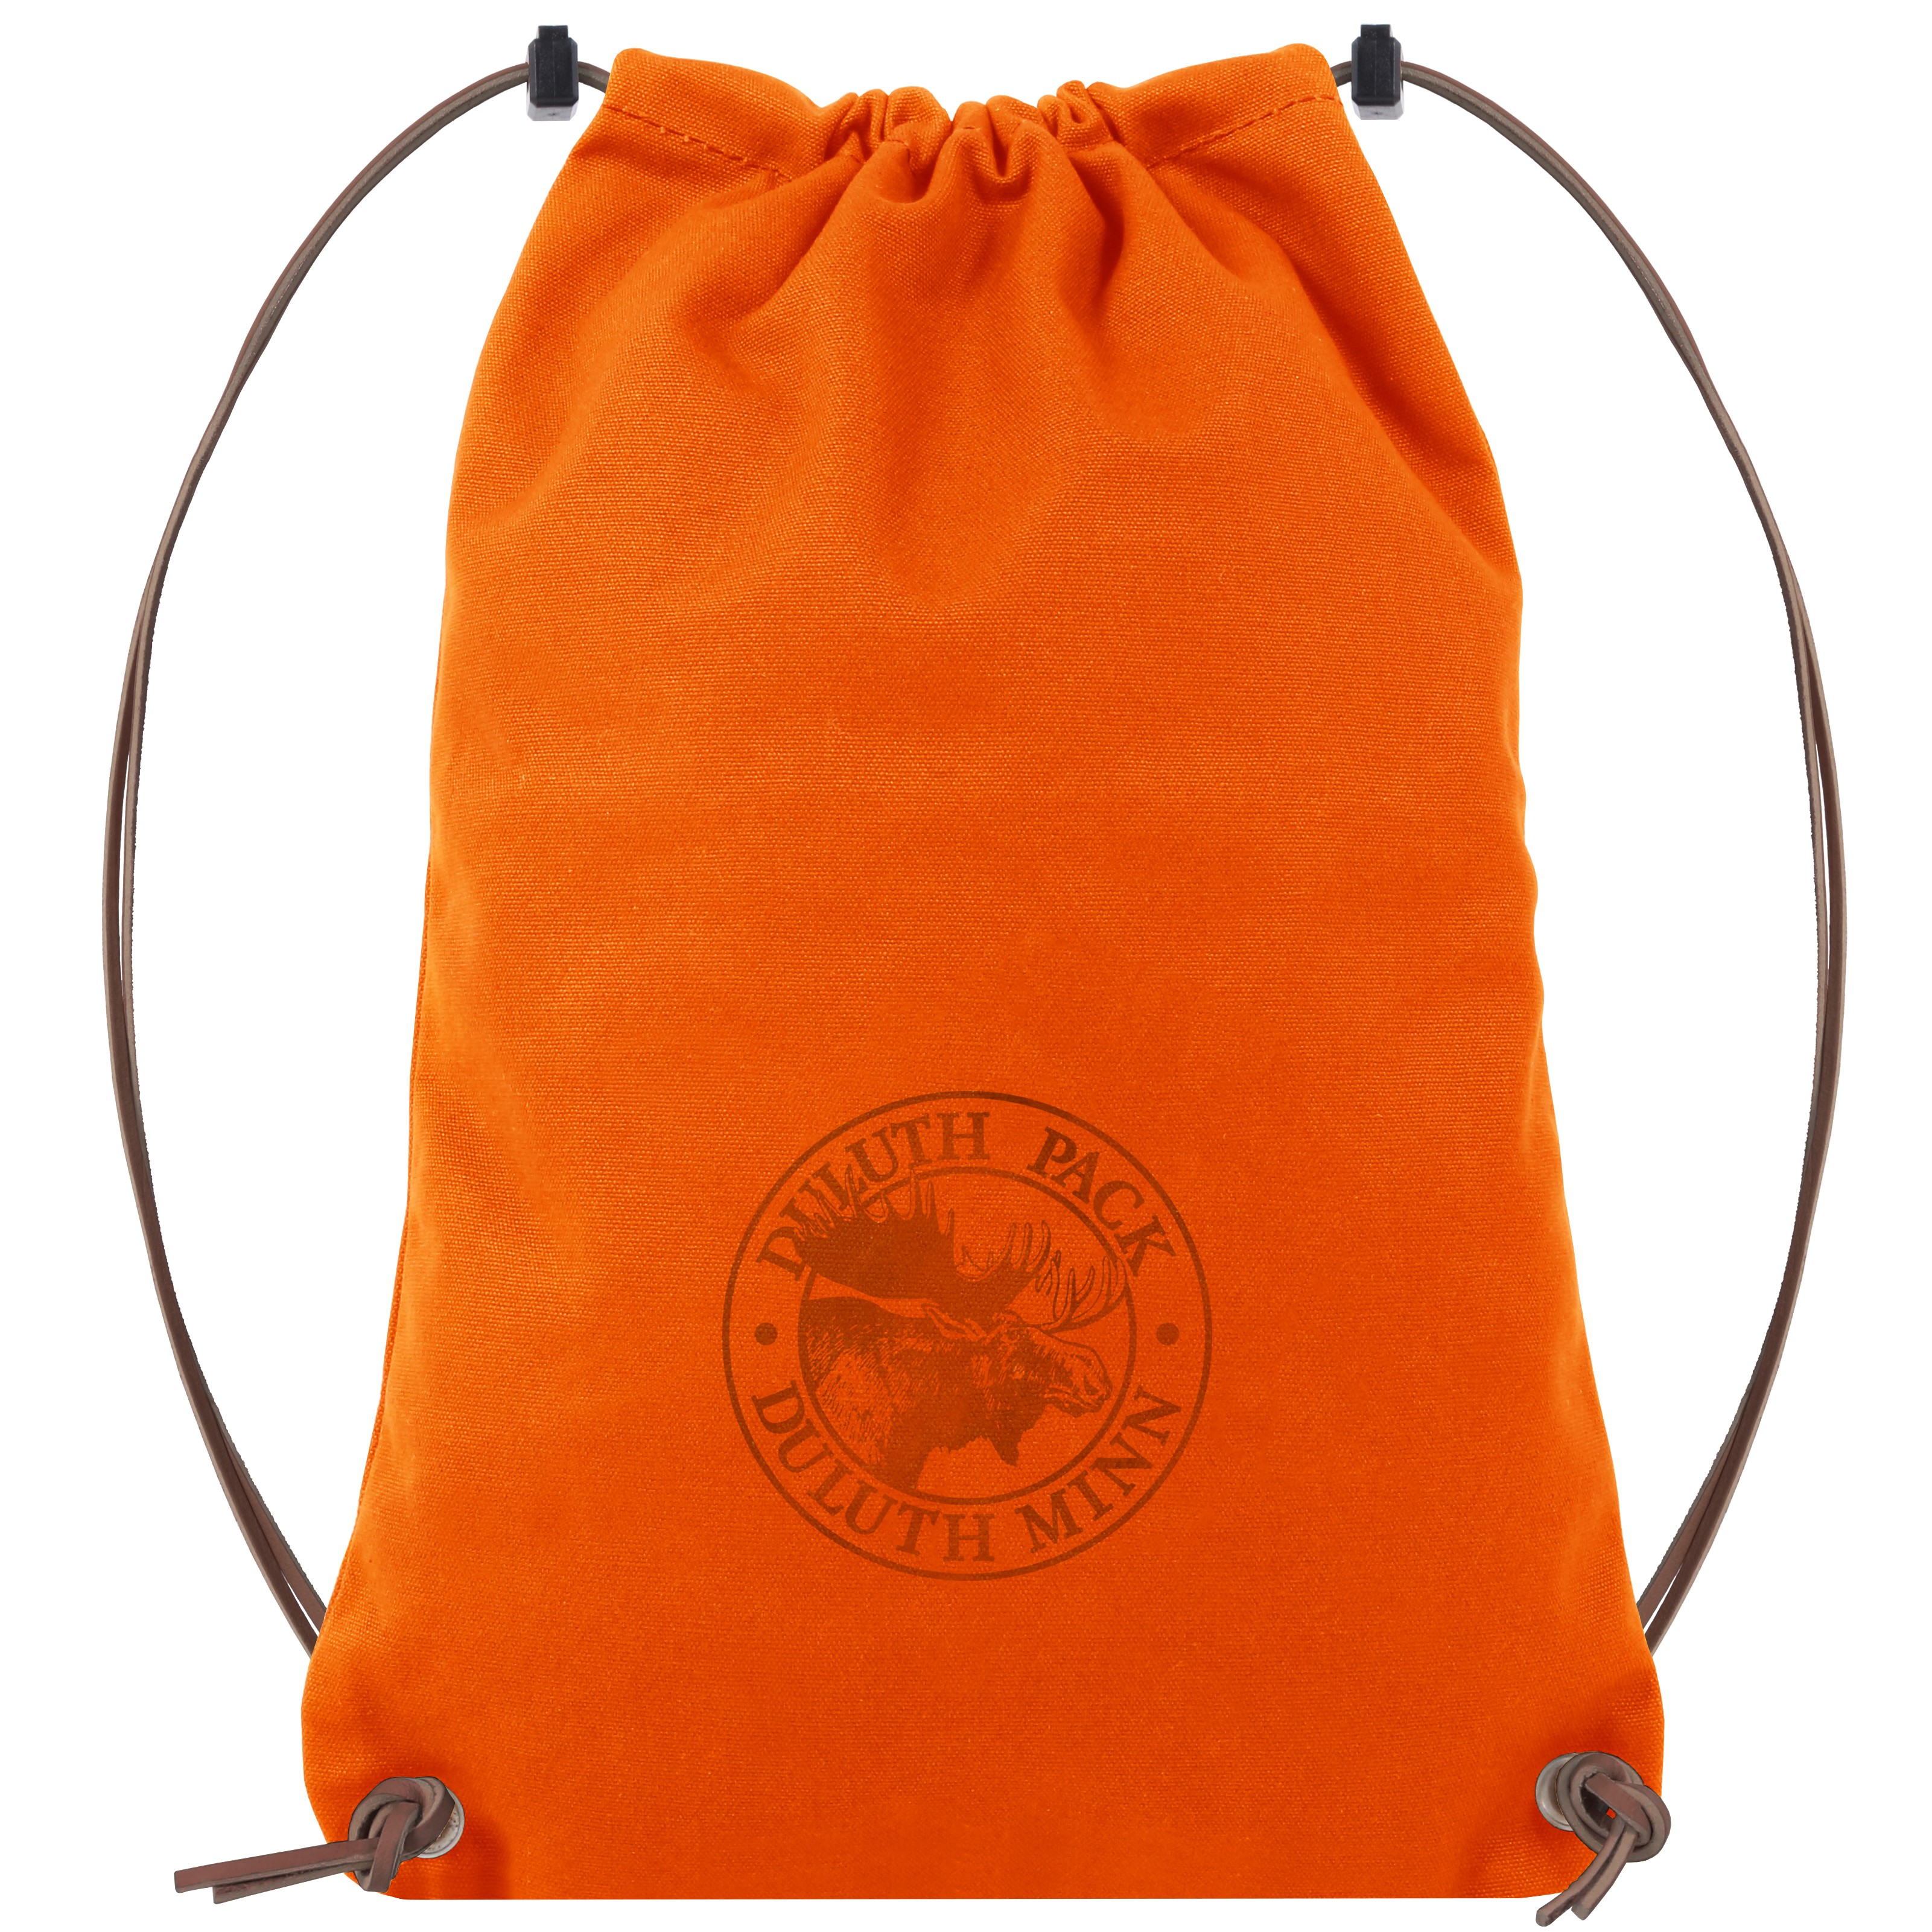 Drawstring Backpack   Made in USA   Guaranteed For Life   Duluth Pack